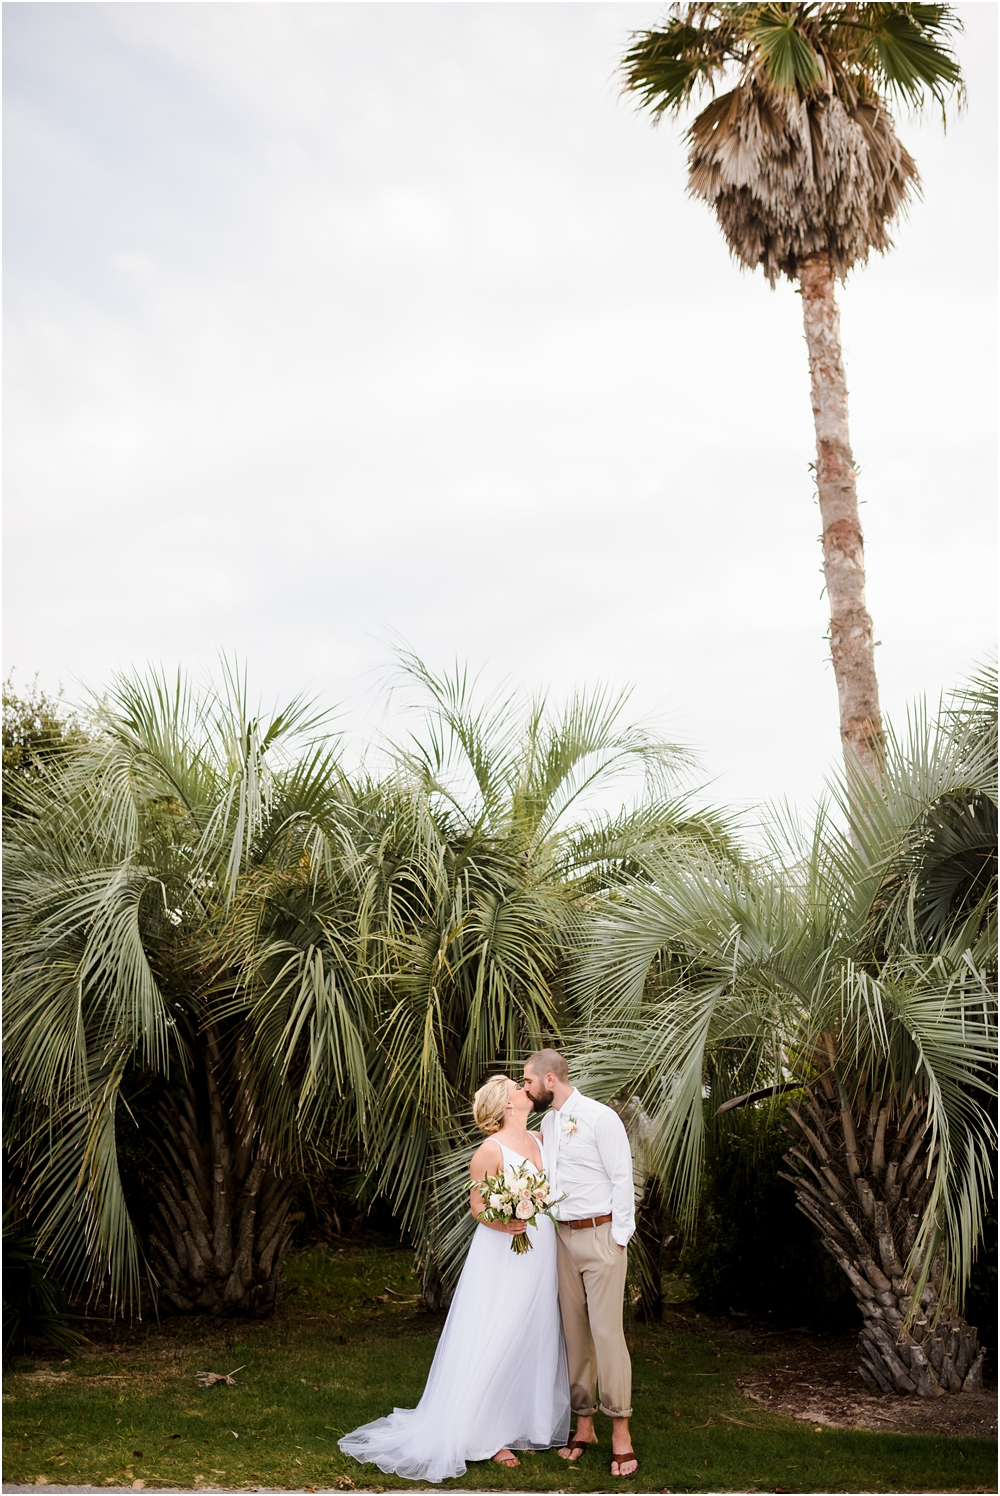 wernert-florida-beach-elopement-wedding-photographer-kiersten-grant-98.jpg